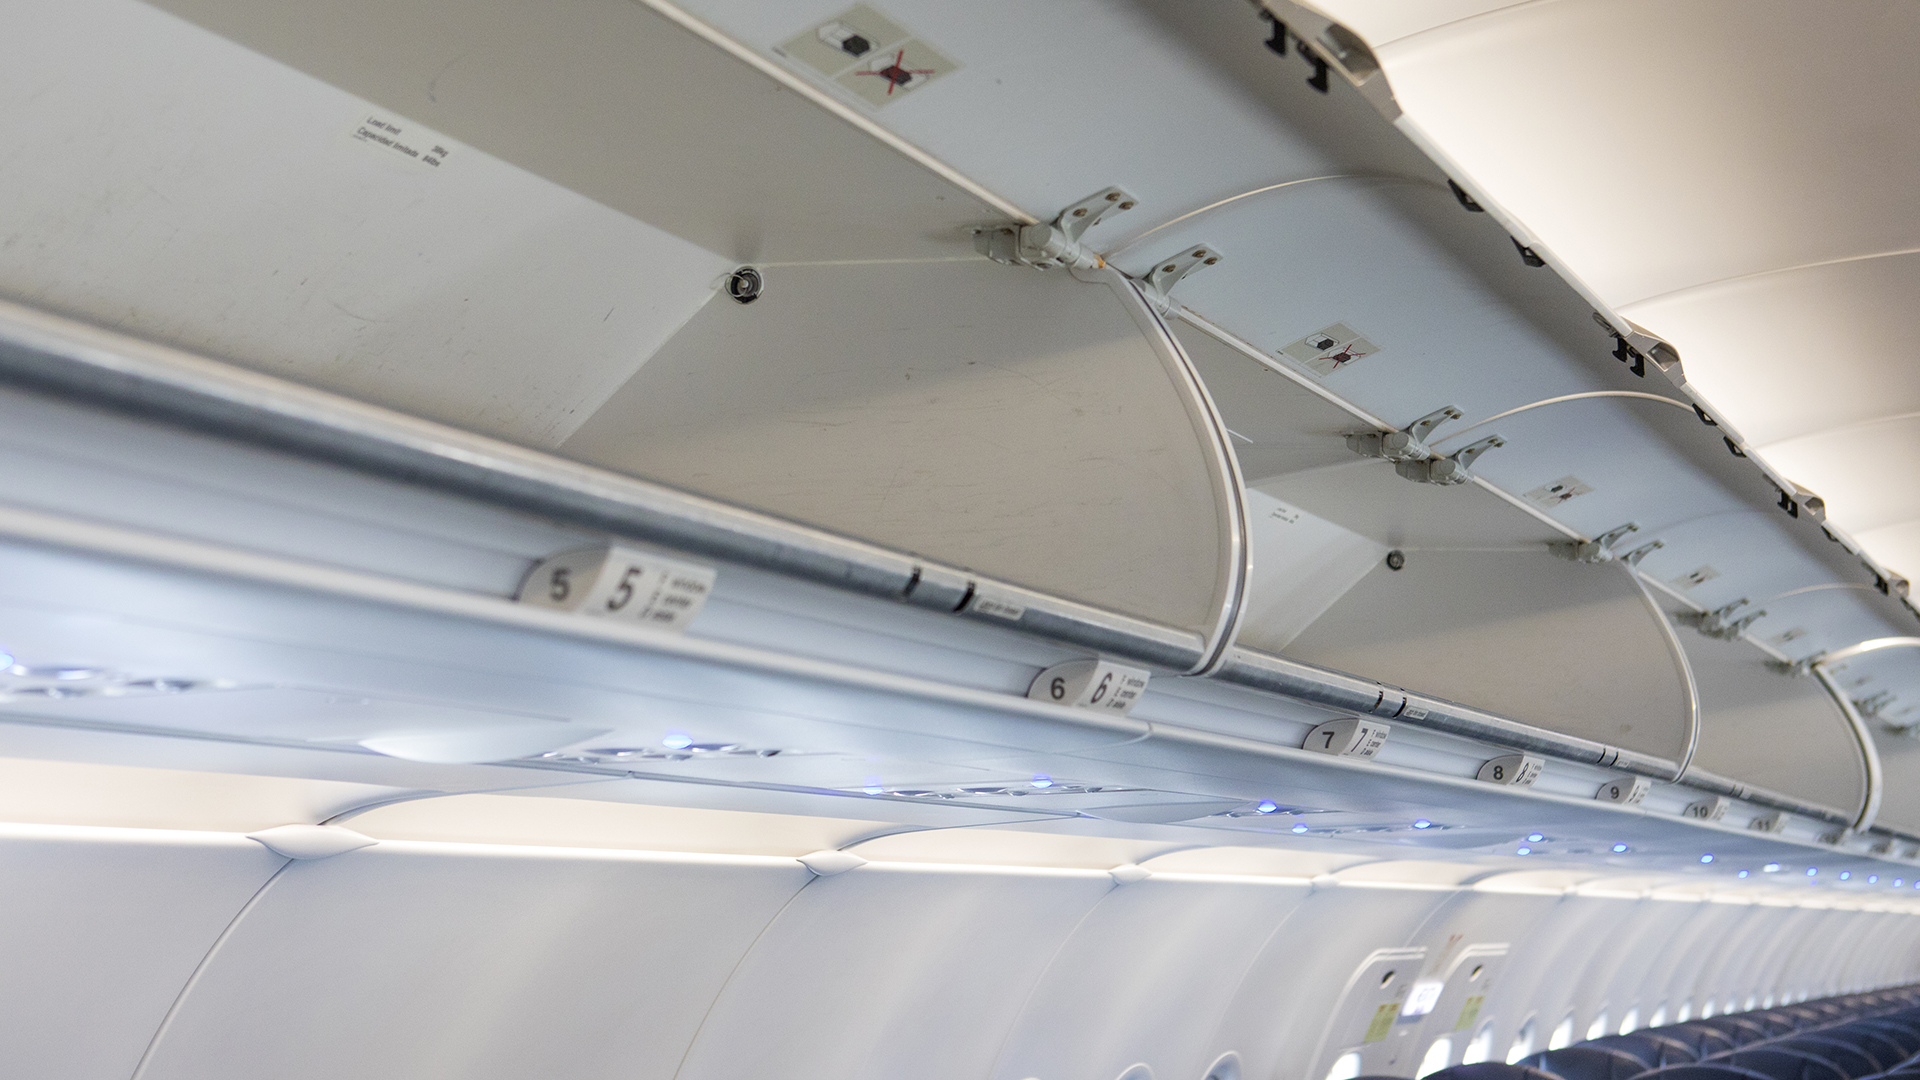 Interior of commercial aircraft